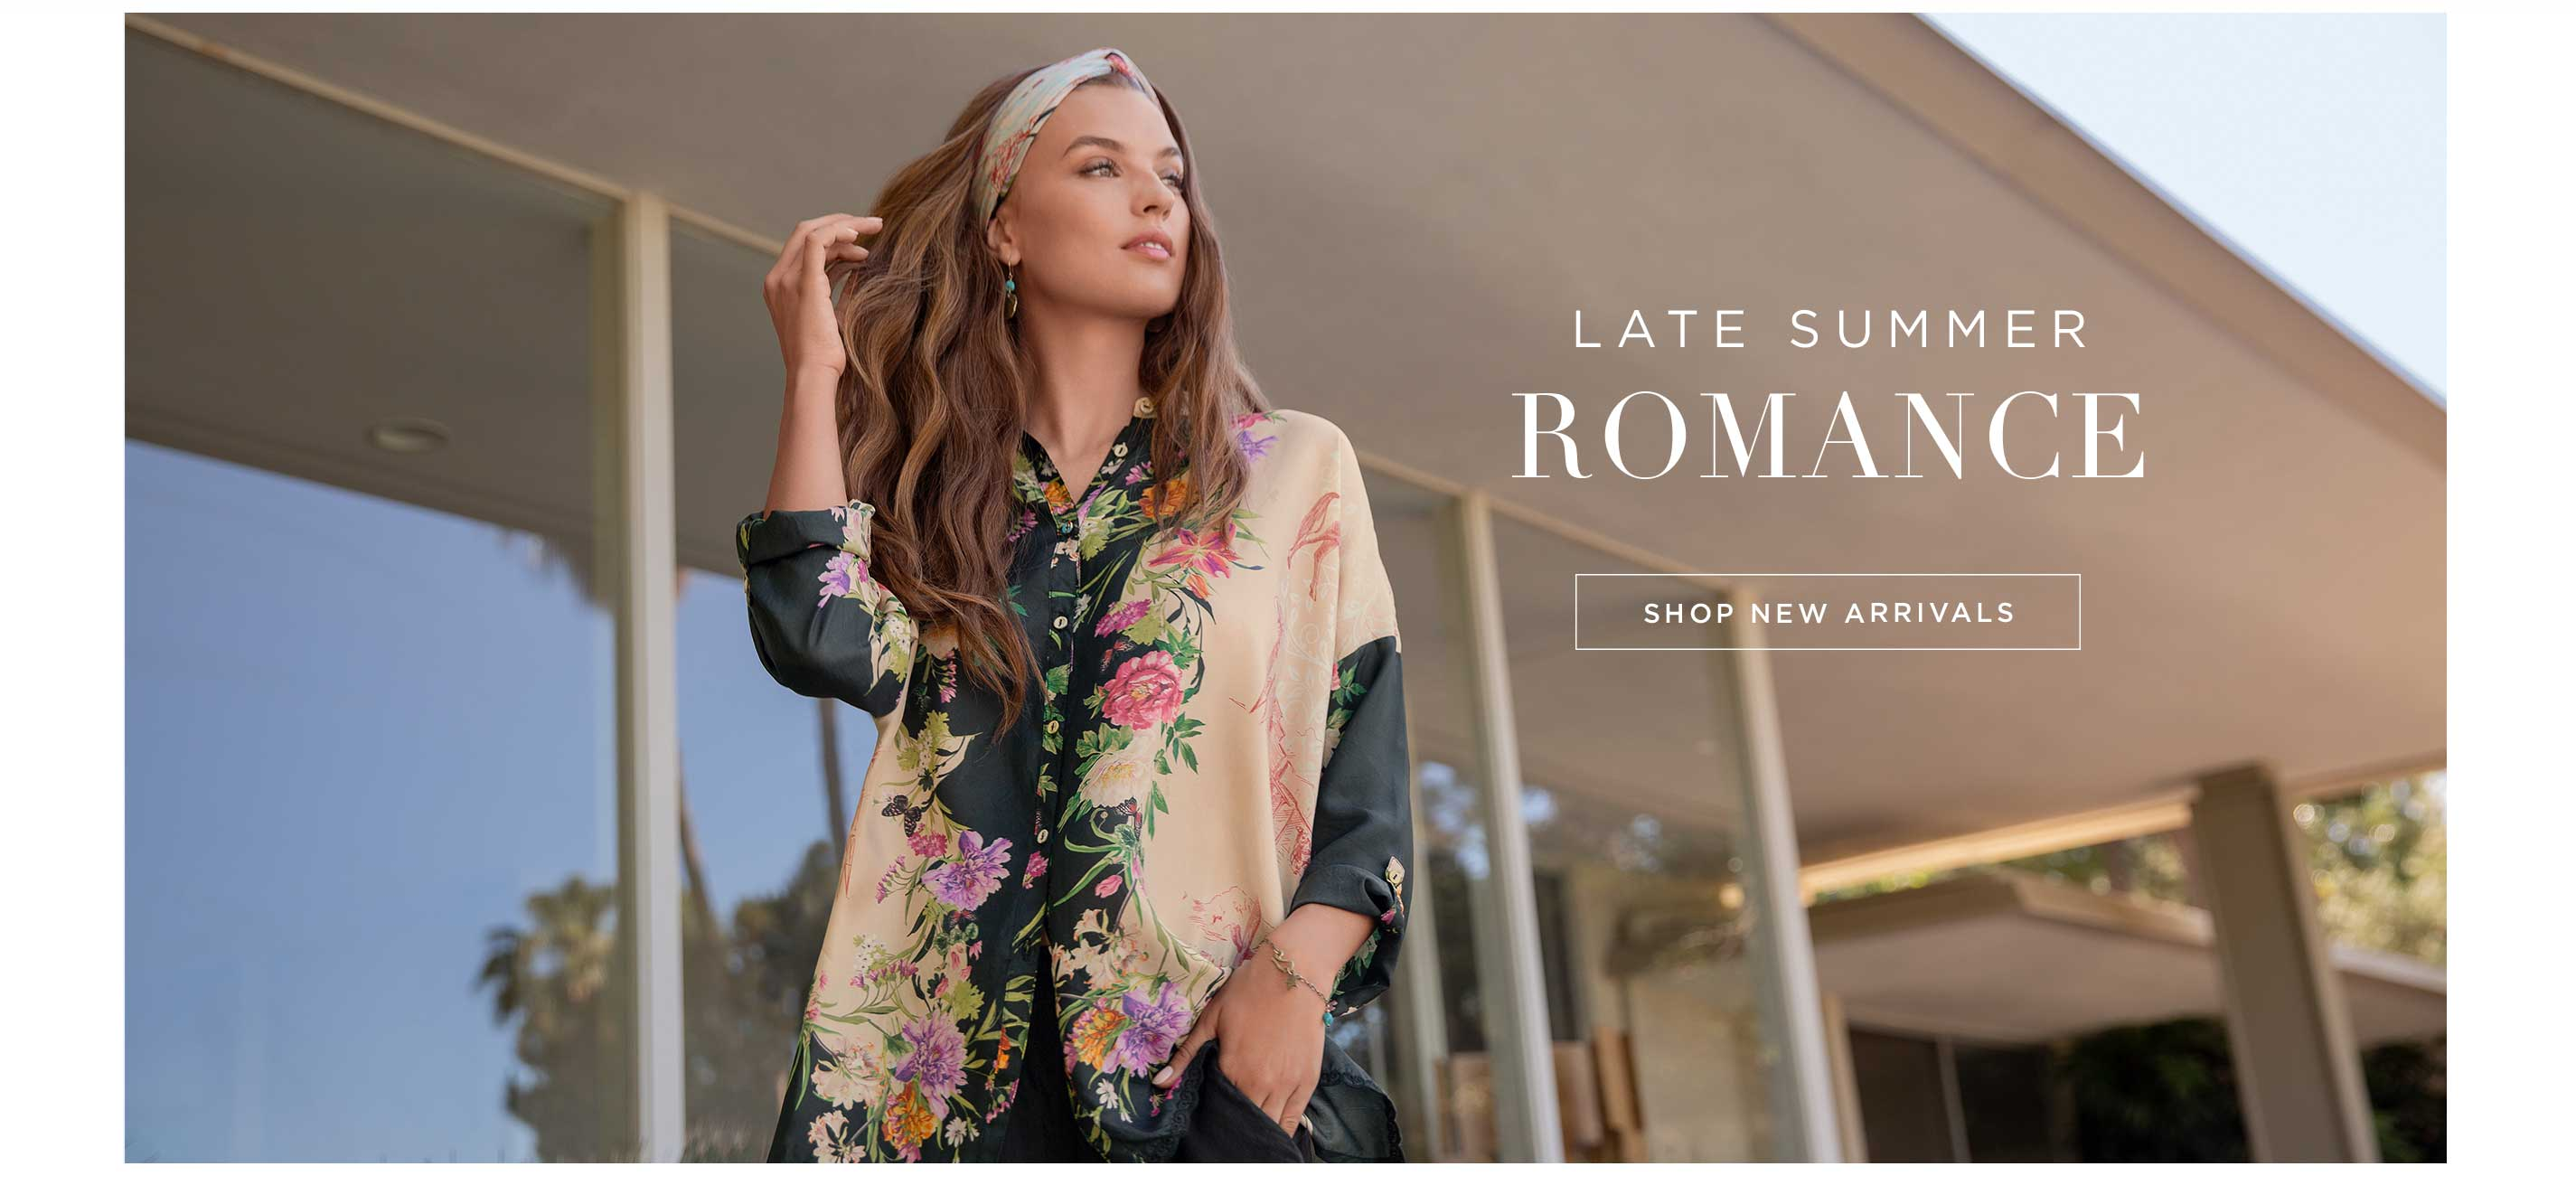 Late Summer Romance - Shop New Arrivals